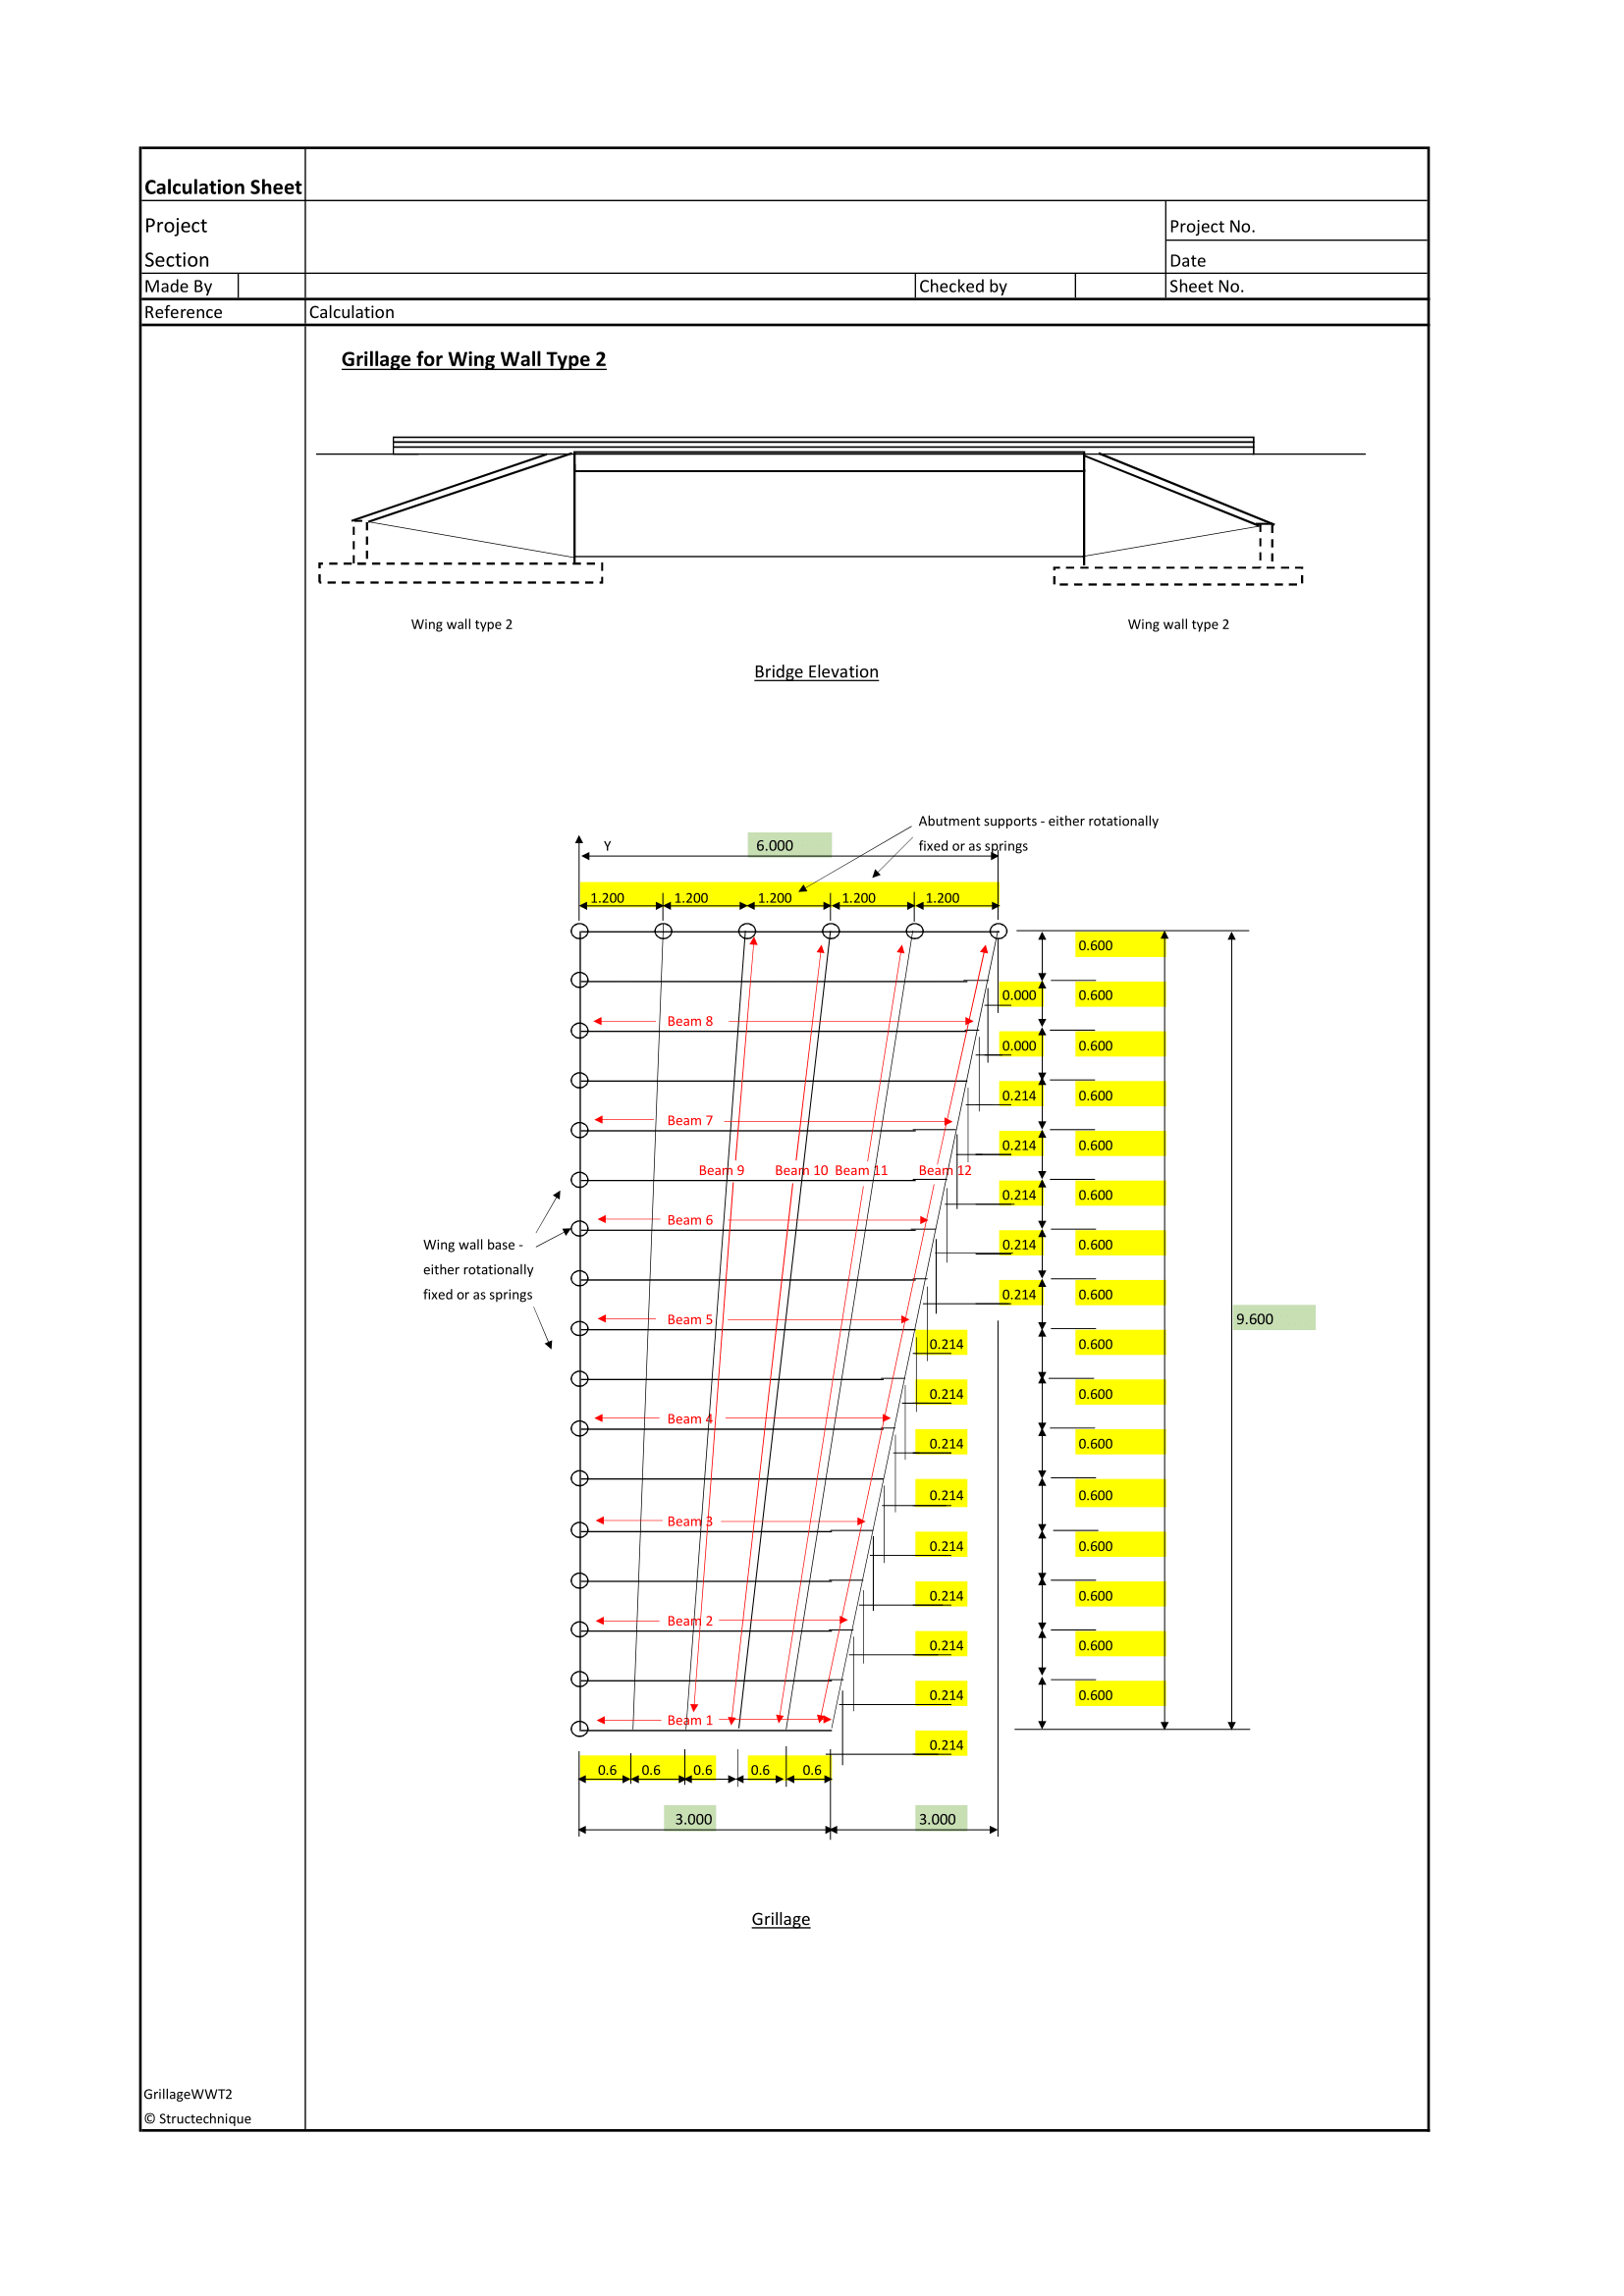 Grillage for bridge wing wall type 2 asrosoft store a grillage analysis for a bridge wing wall type 2 see extract supported on fixed or rotational springs using a stiffness matrix based on 3 degrees of ccuart Choice Image